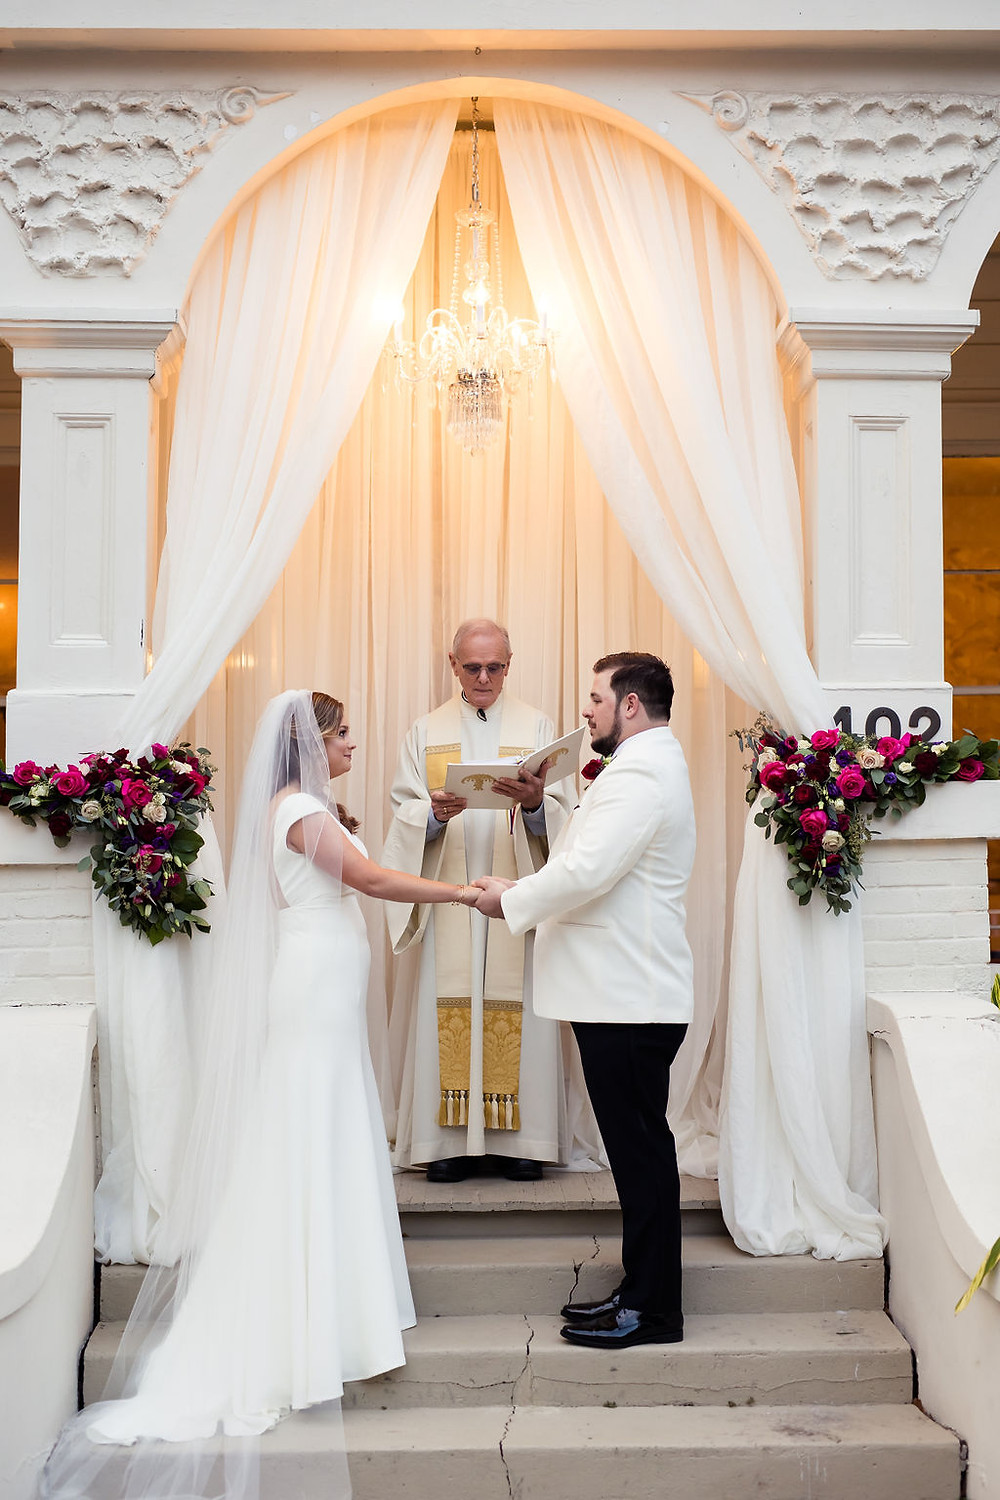 Bride and groom at their wedding ceremony with drapery, flowers, and a chandelier